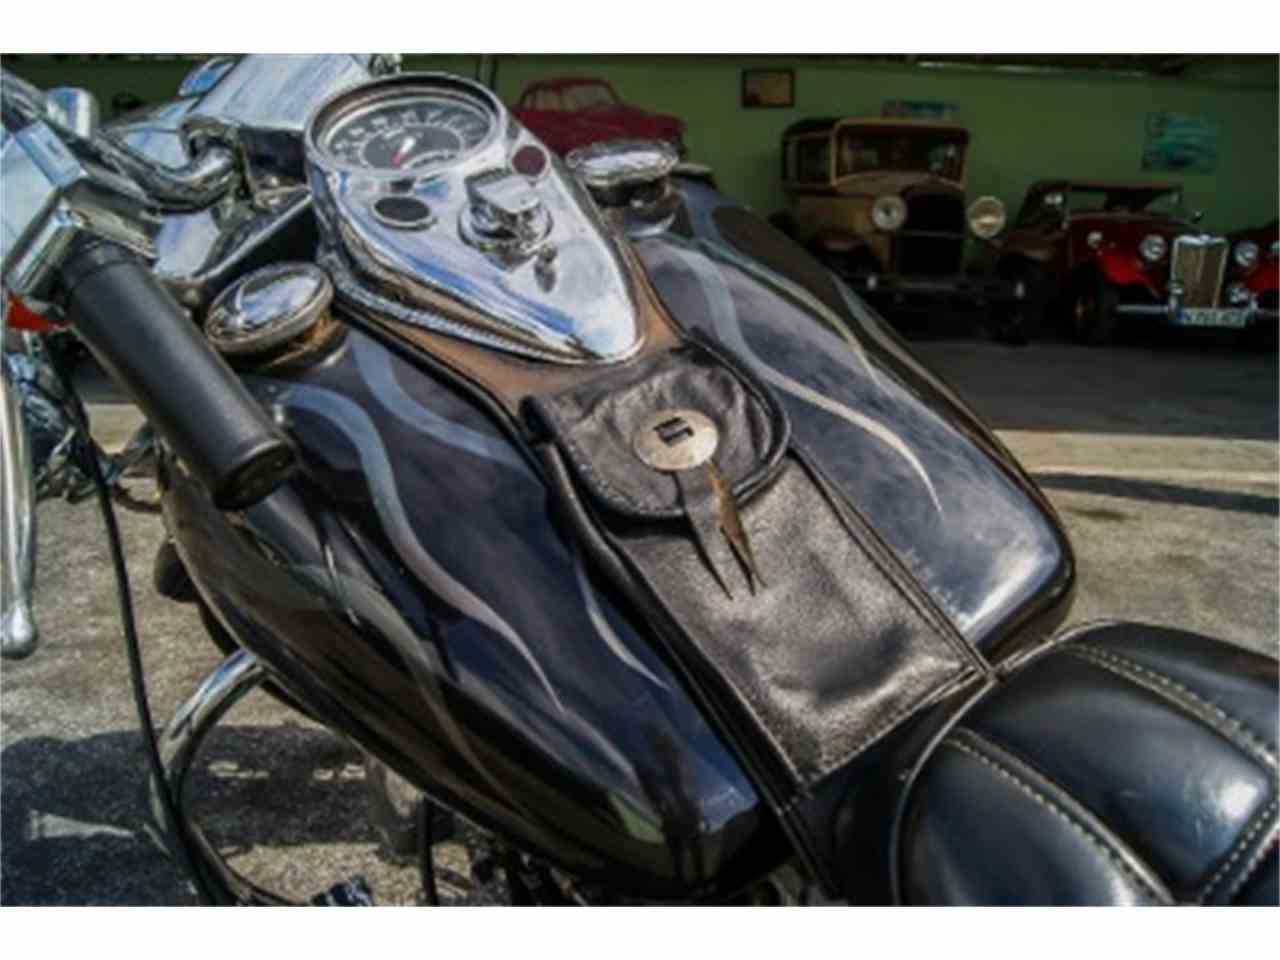 Large Picture of '82 Harley Davidson - $8,500.00 Offered by Sobe Classics - FVQR